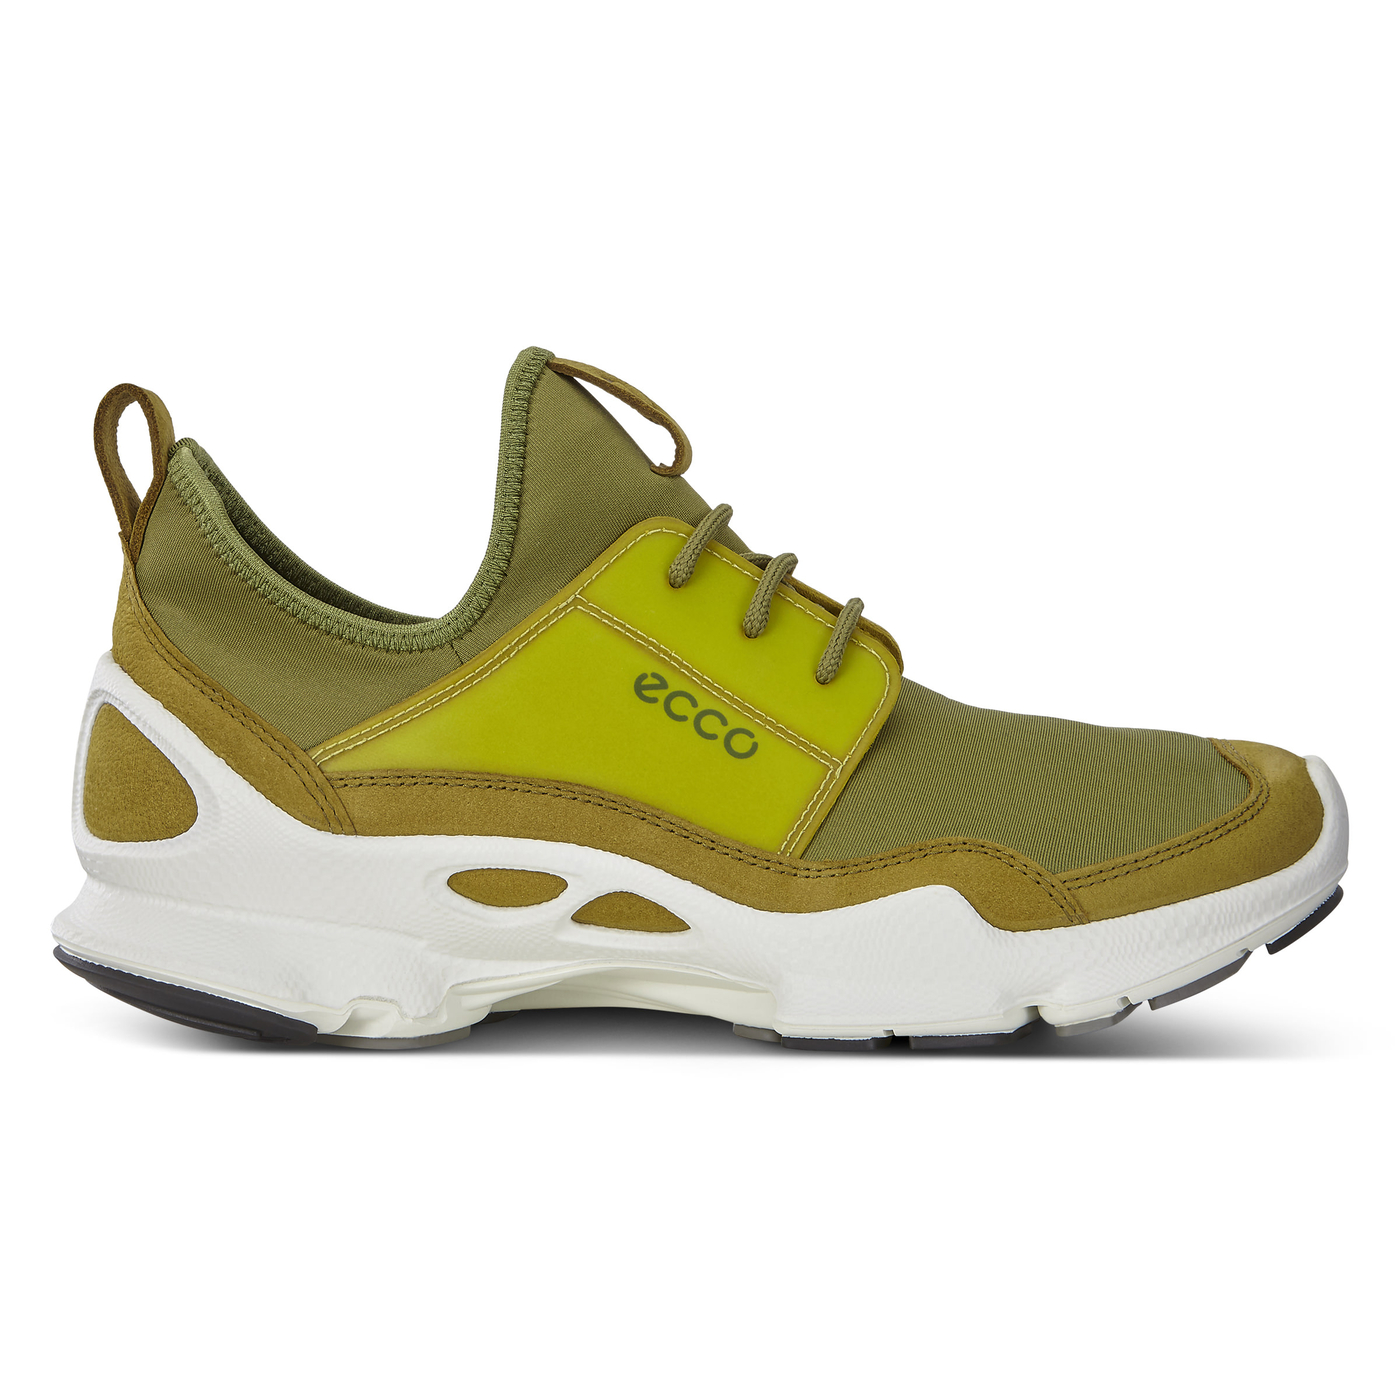 792edca46043 ECCO BIOM C - MEN S Shoe